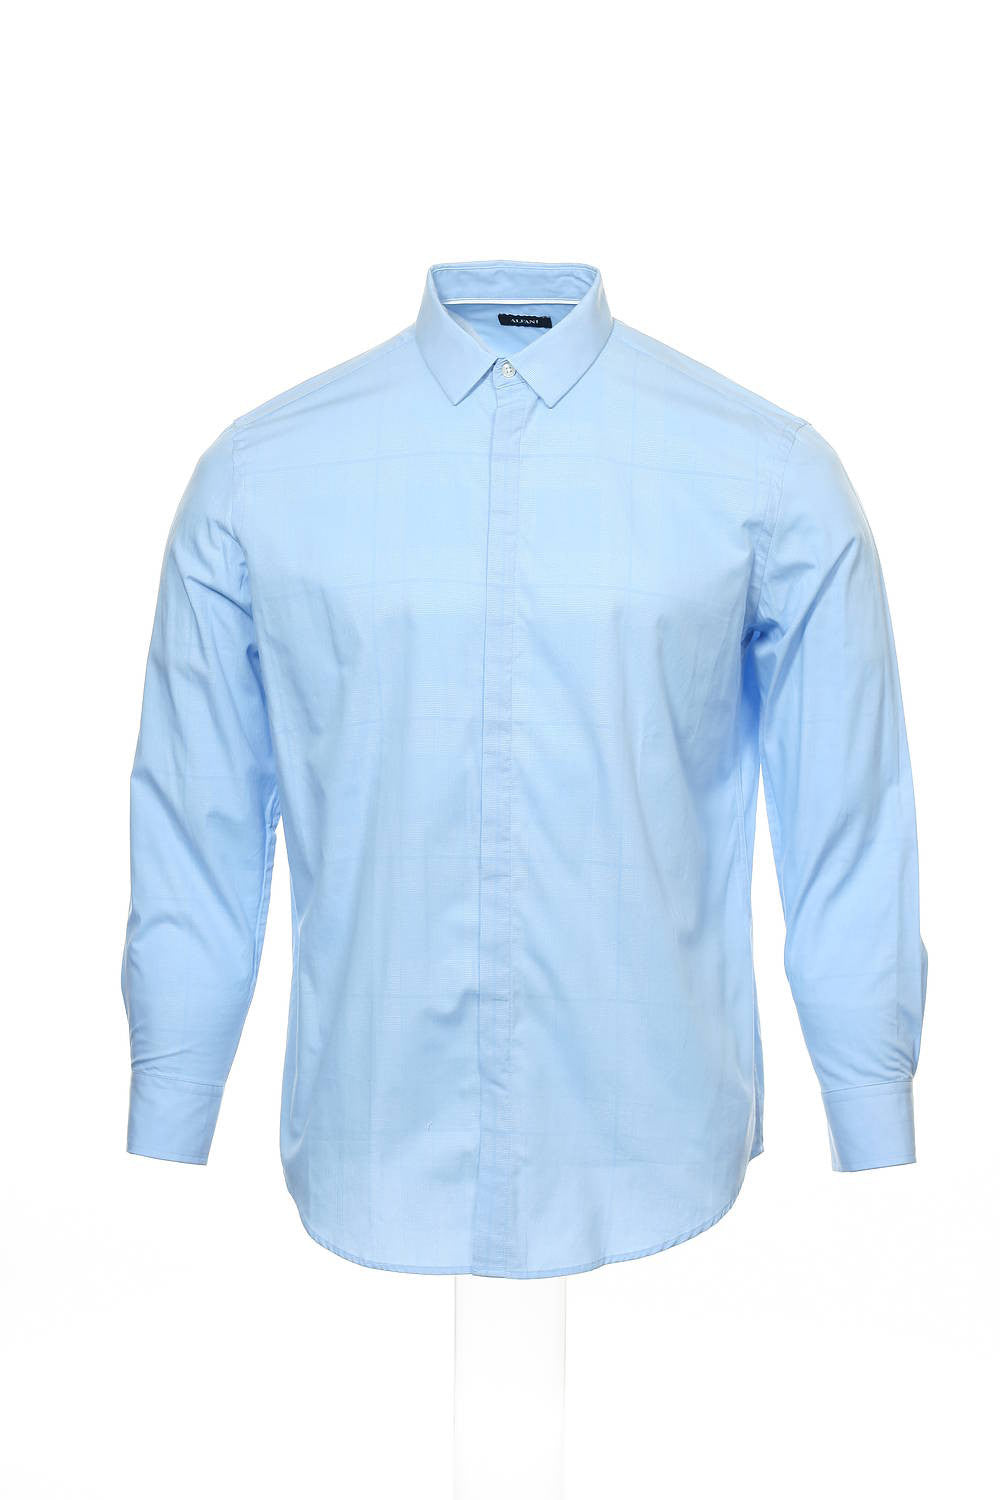 Alfani Mens Light Blue Window Pane Button Down Shirt